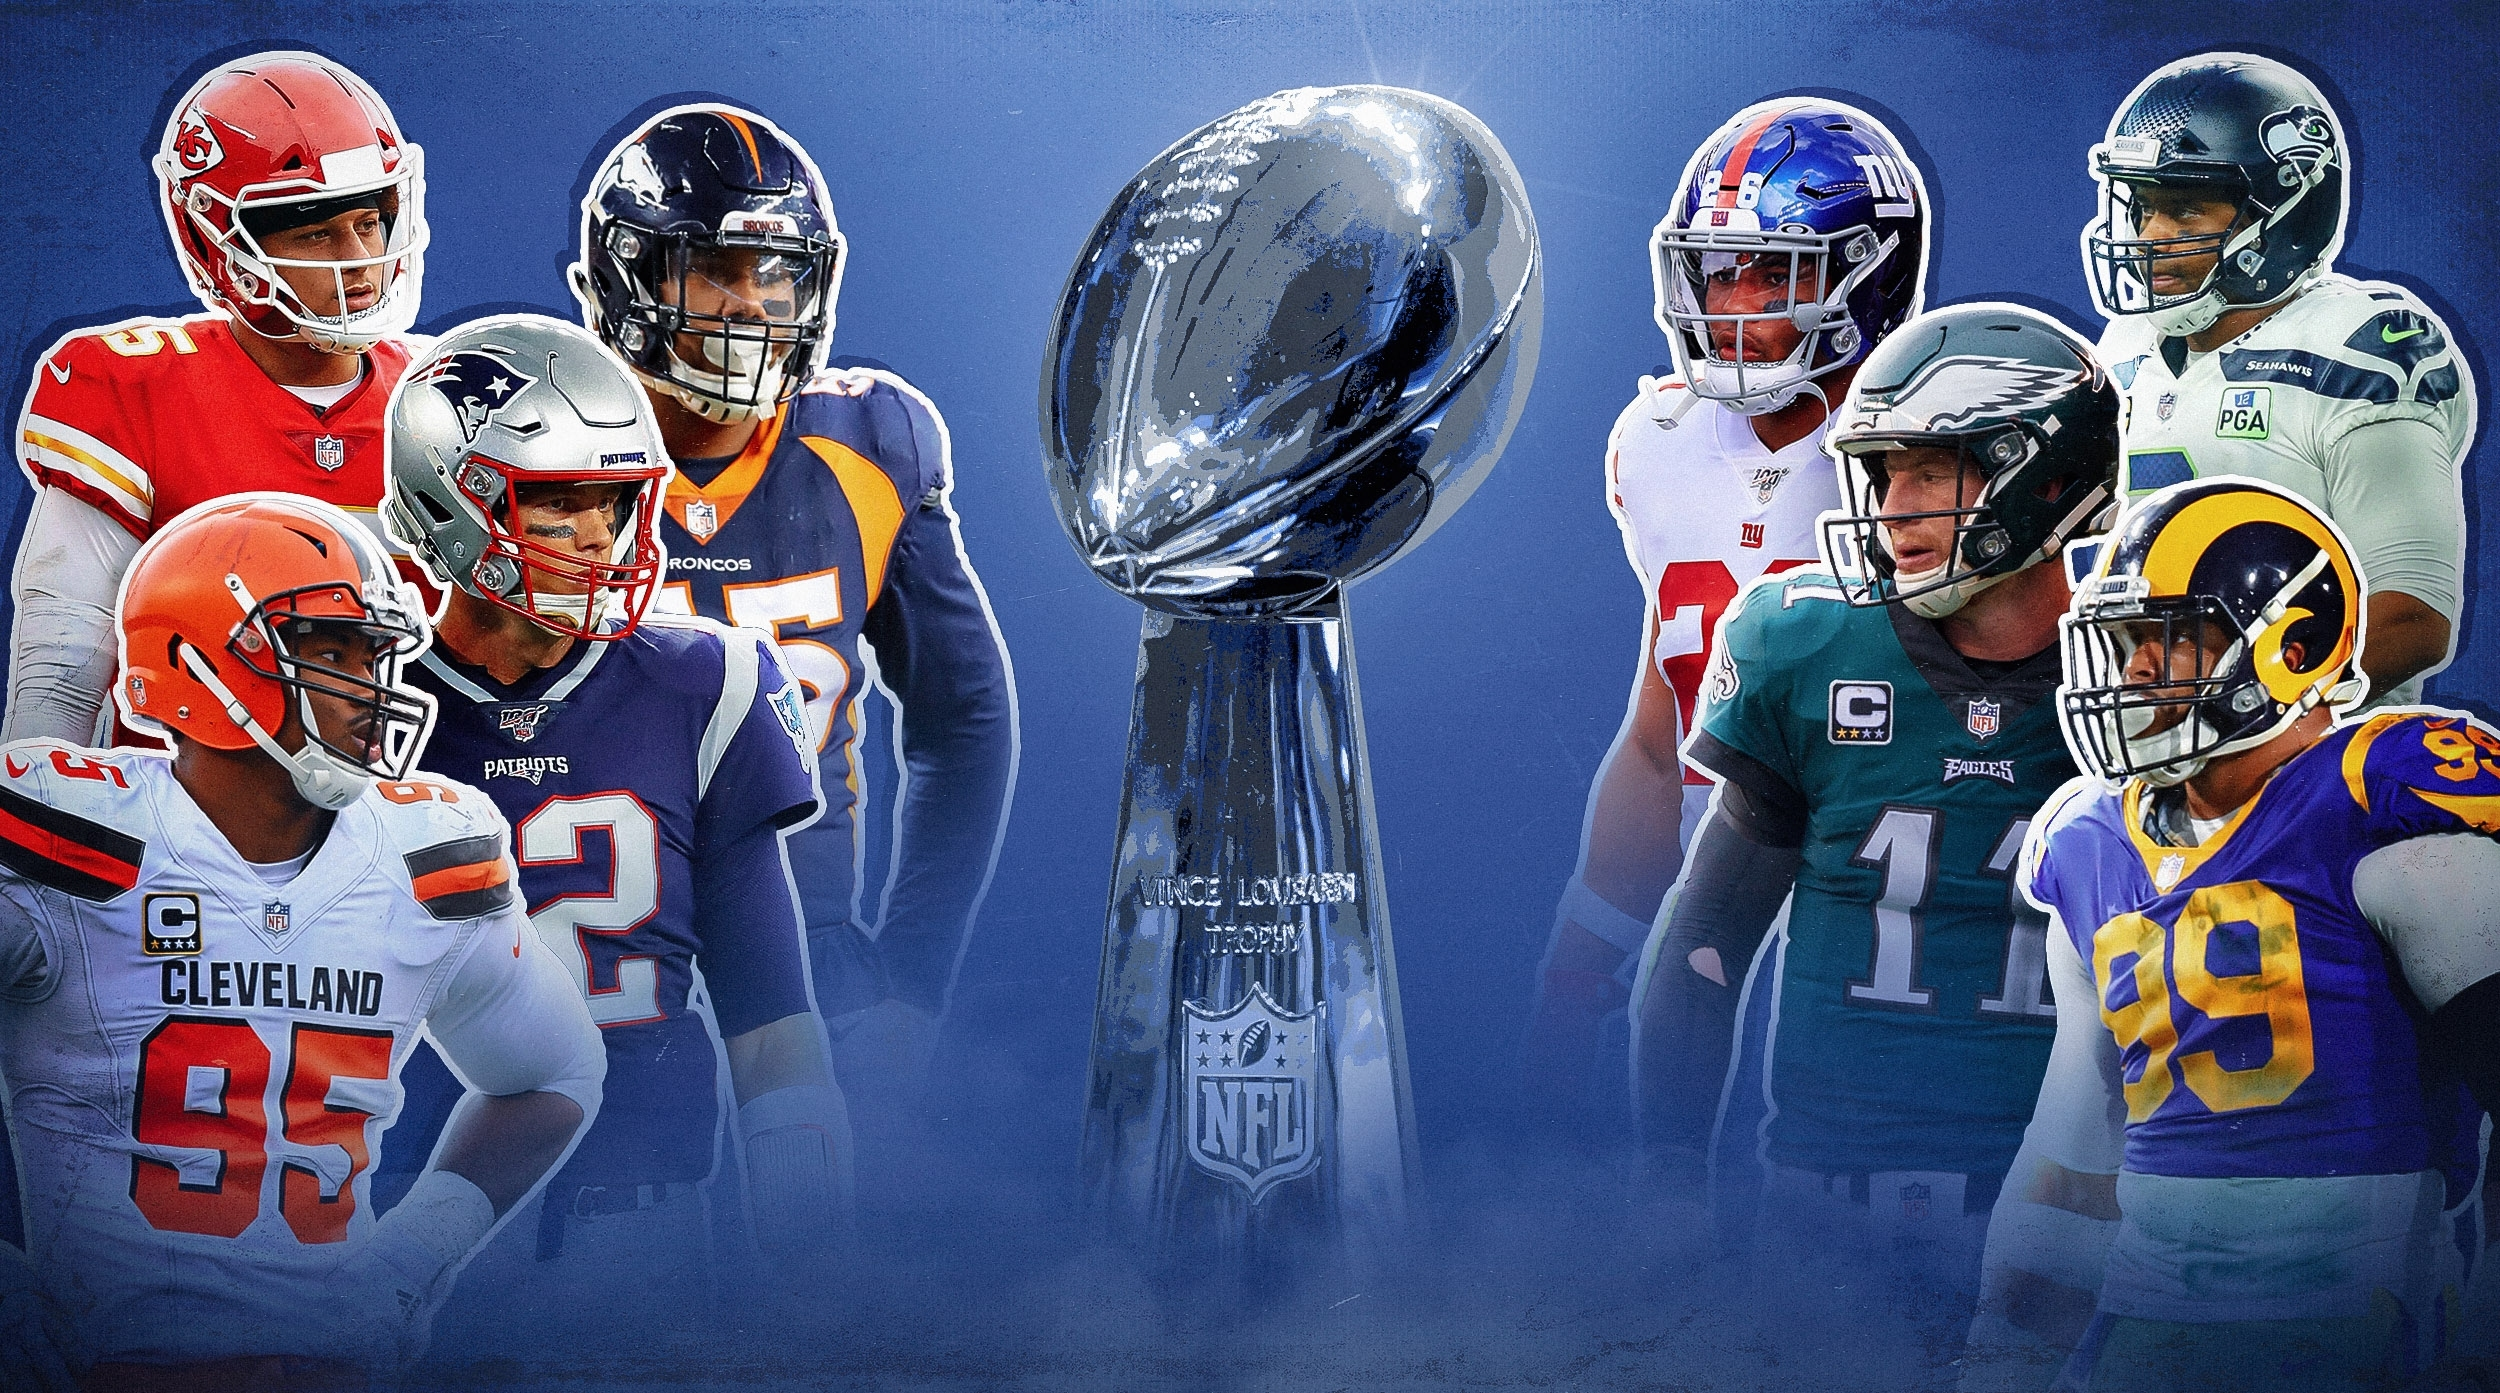 Nfl Predictions 2019: Playoff Picks, Super Bowl Champ, Nfl within The Super Bowl 2019